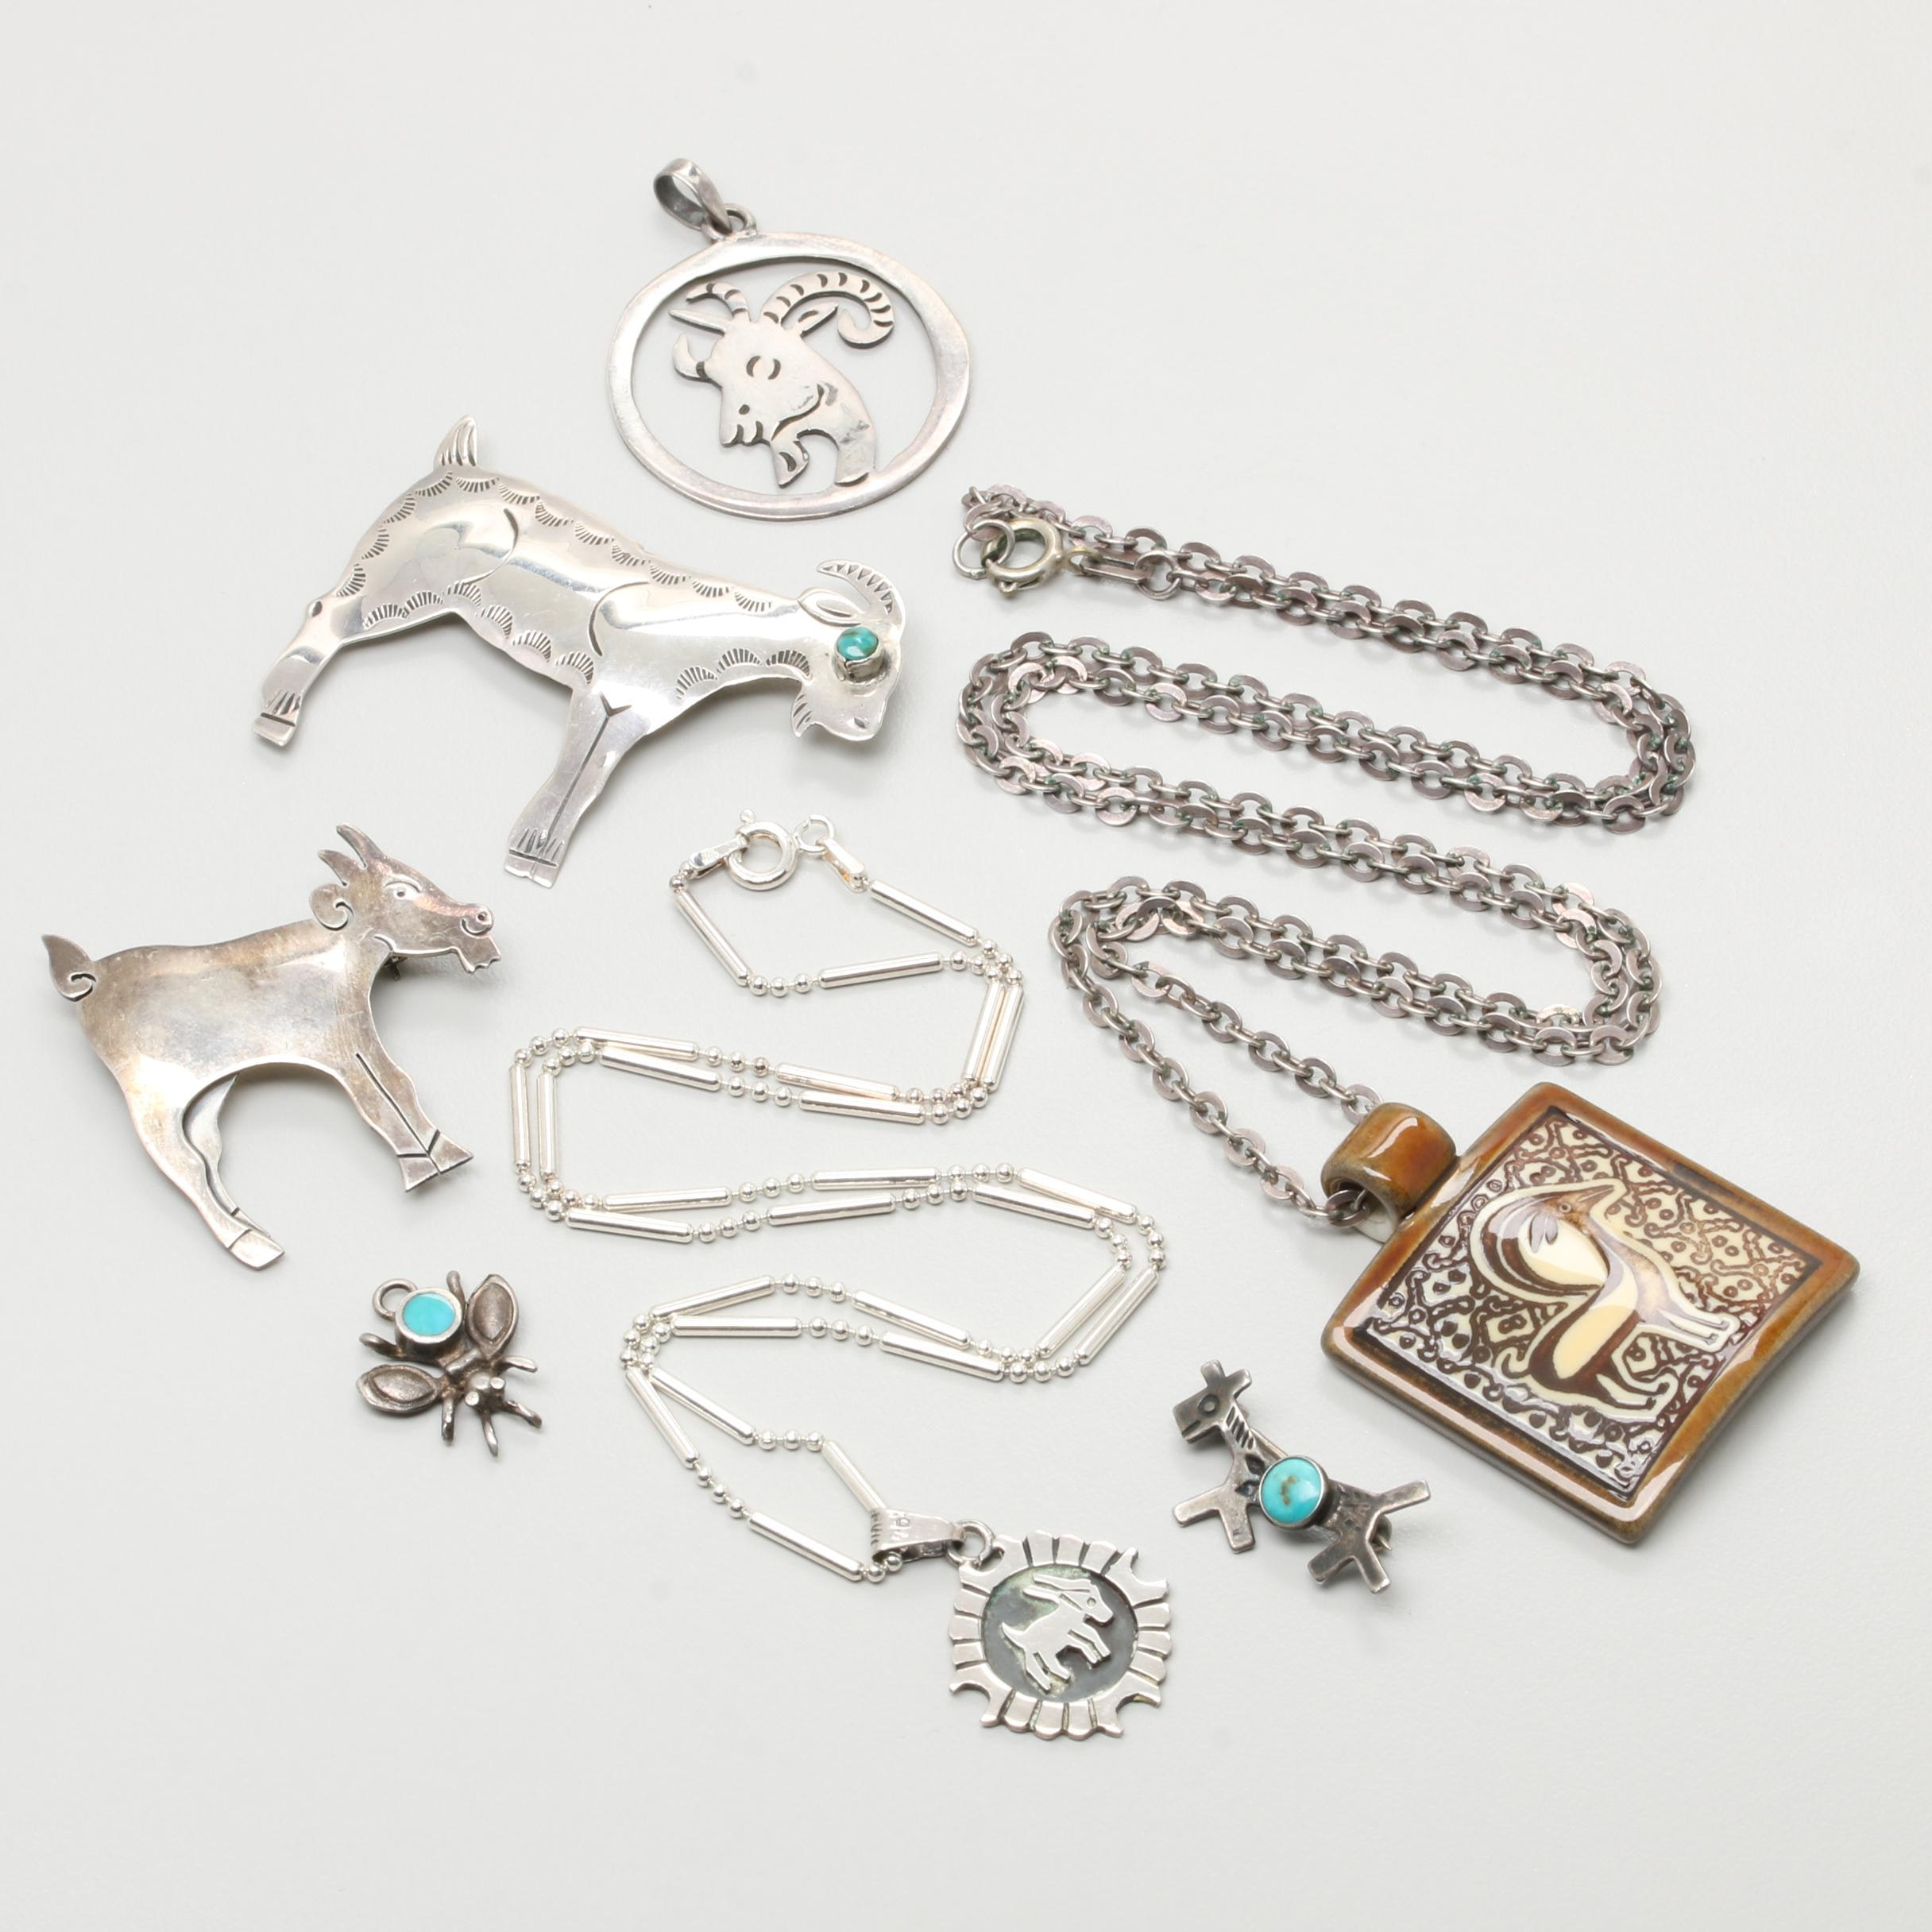 Sterling Silver Jewelry Selection with Turquoise and Glazed Porcelain